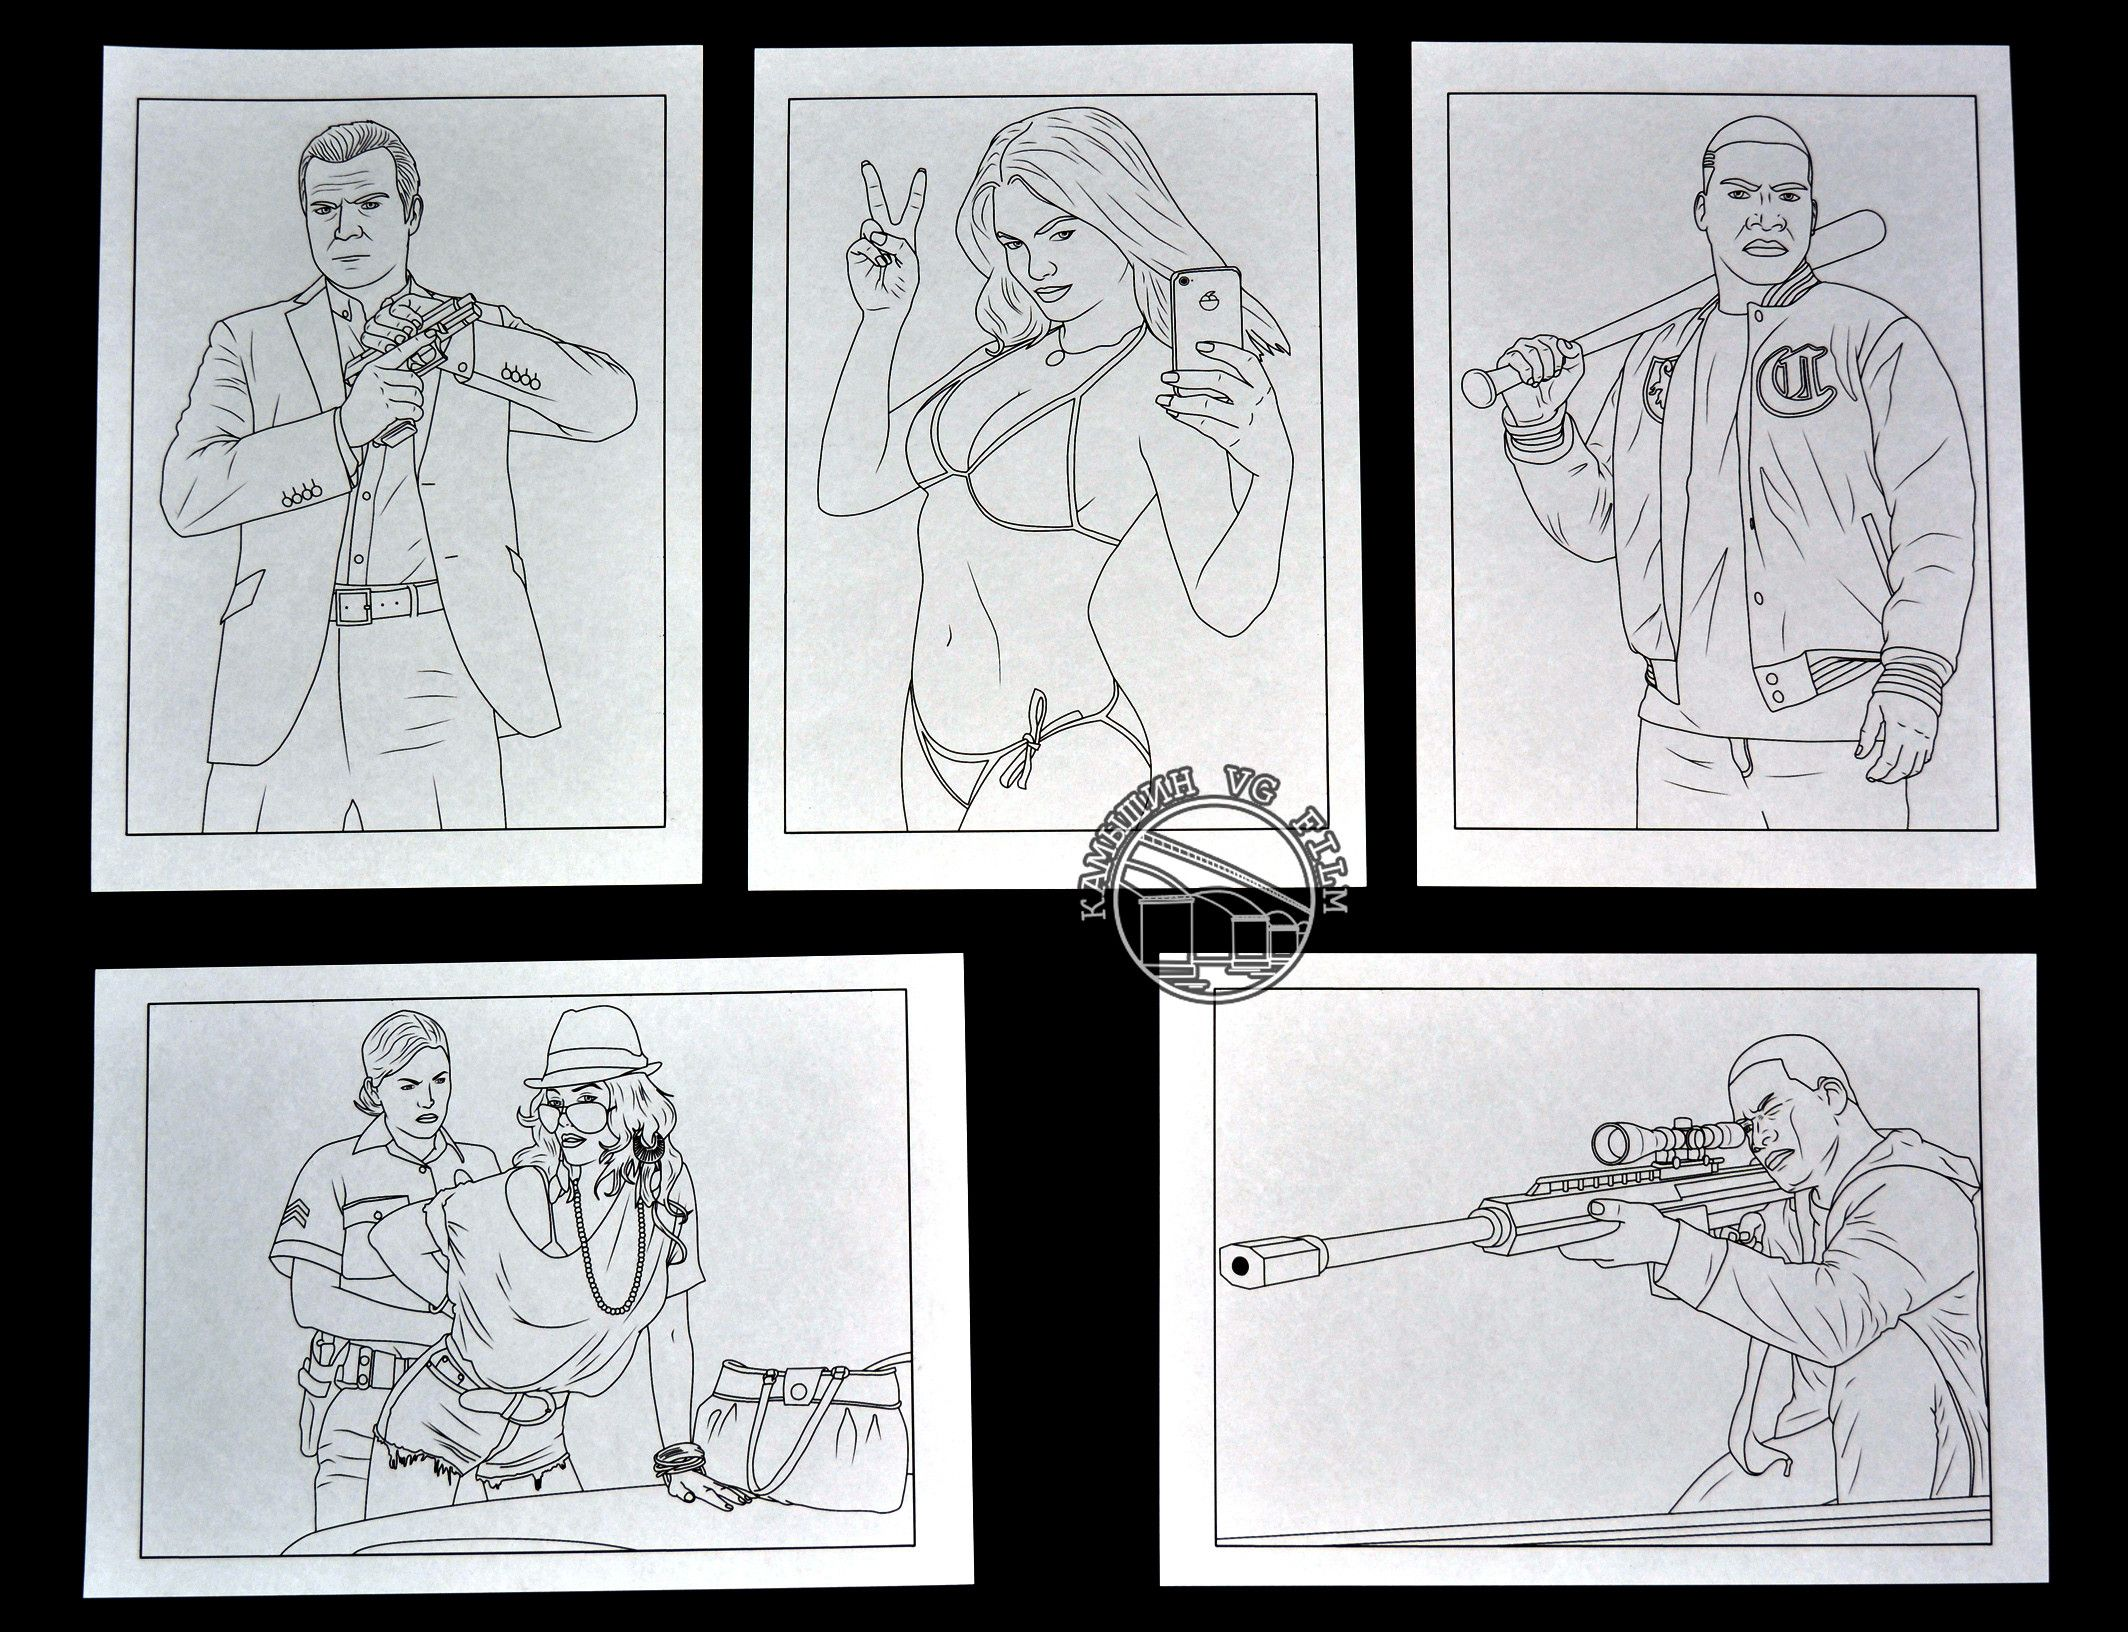 Gta 5 Coloring Book Gta And Video Games Gta 5 Coloring Pages